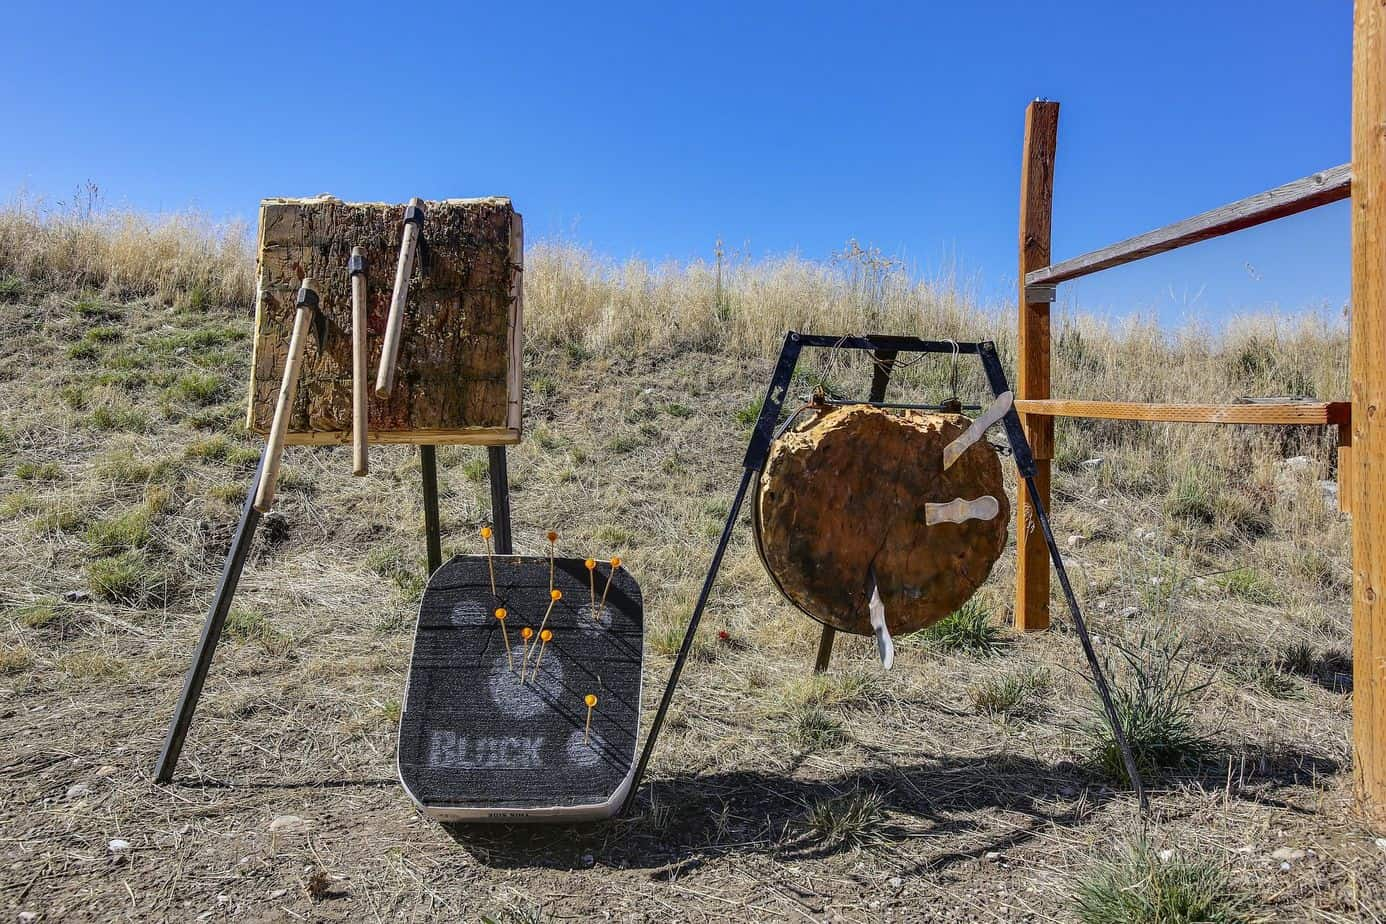 Tomahawk And Knife Throwing Tips